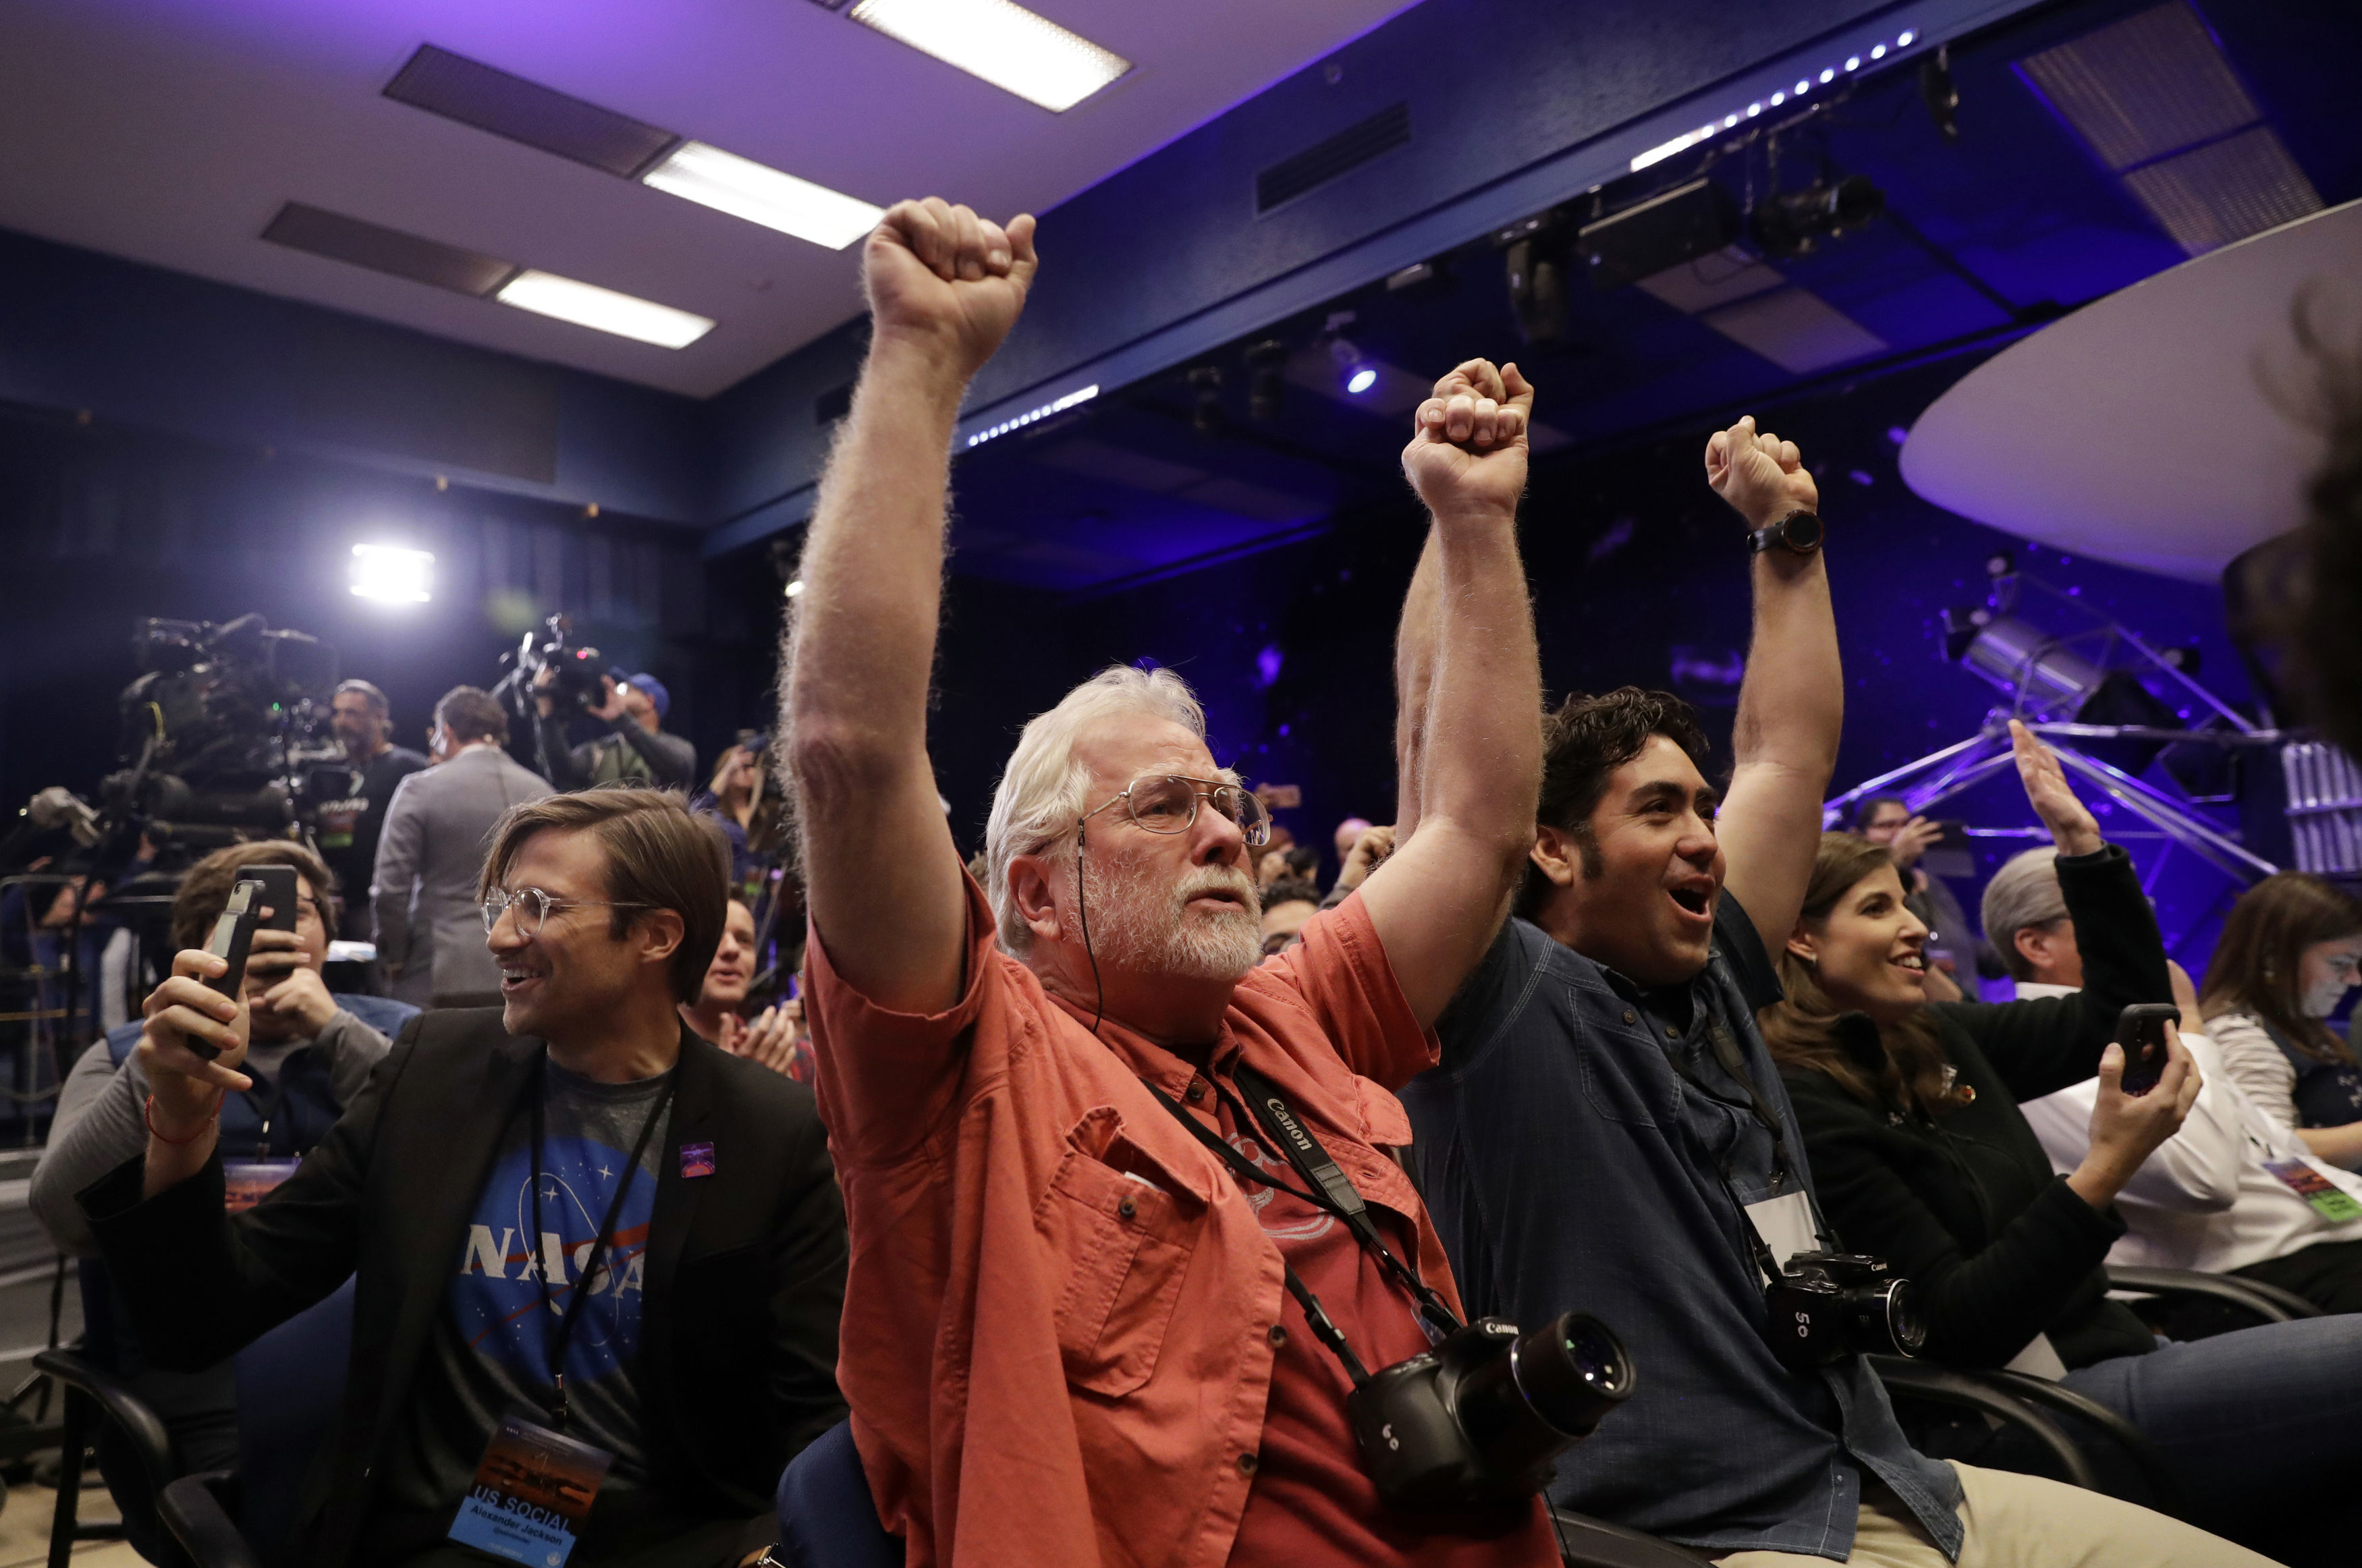 People celebrate as the In Sight lander touchdowns on Mars at Nasa's Jet Propulsion Laboratory